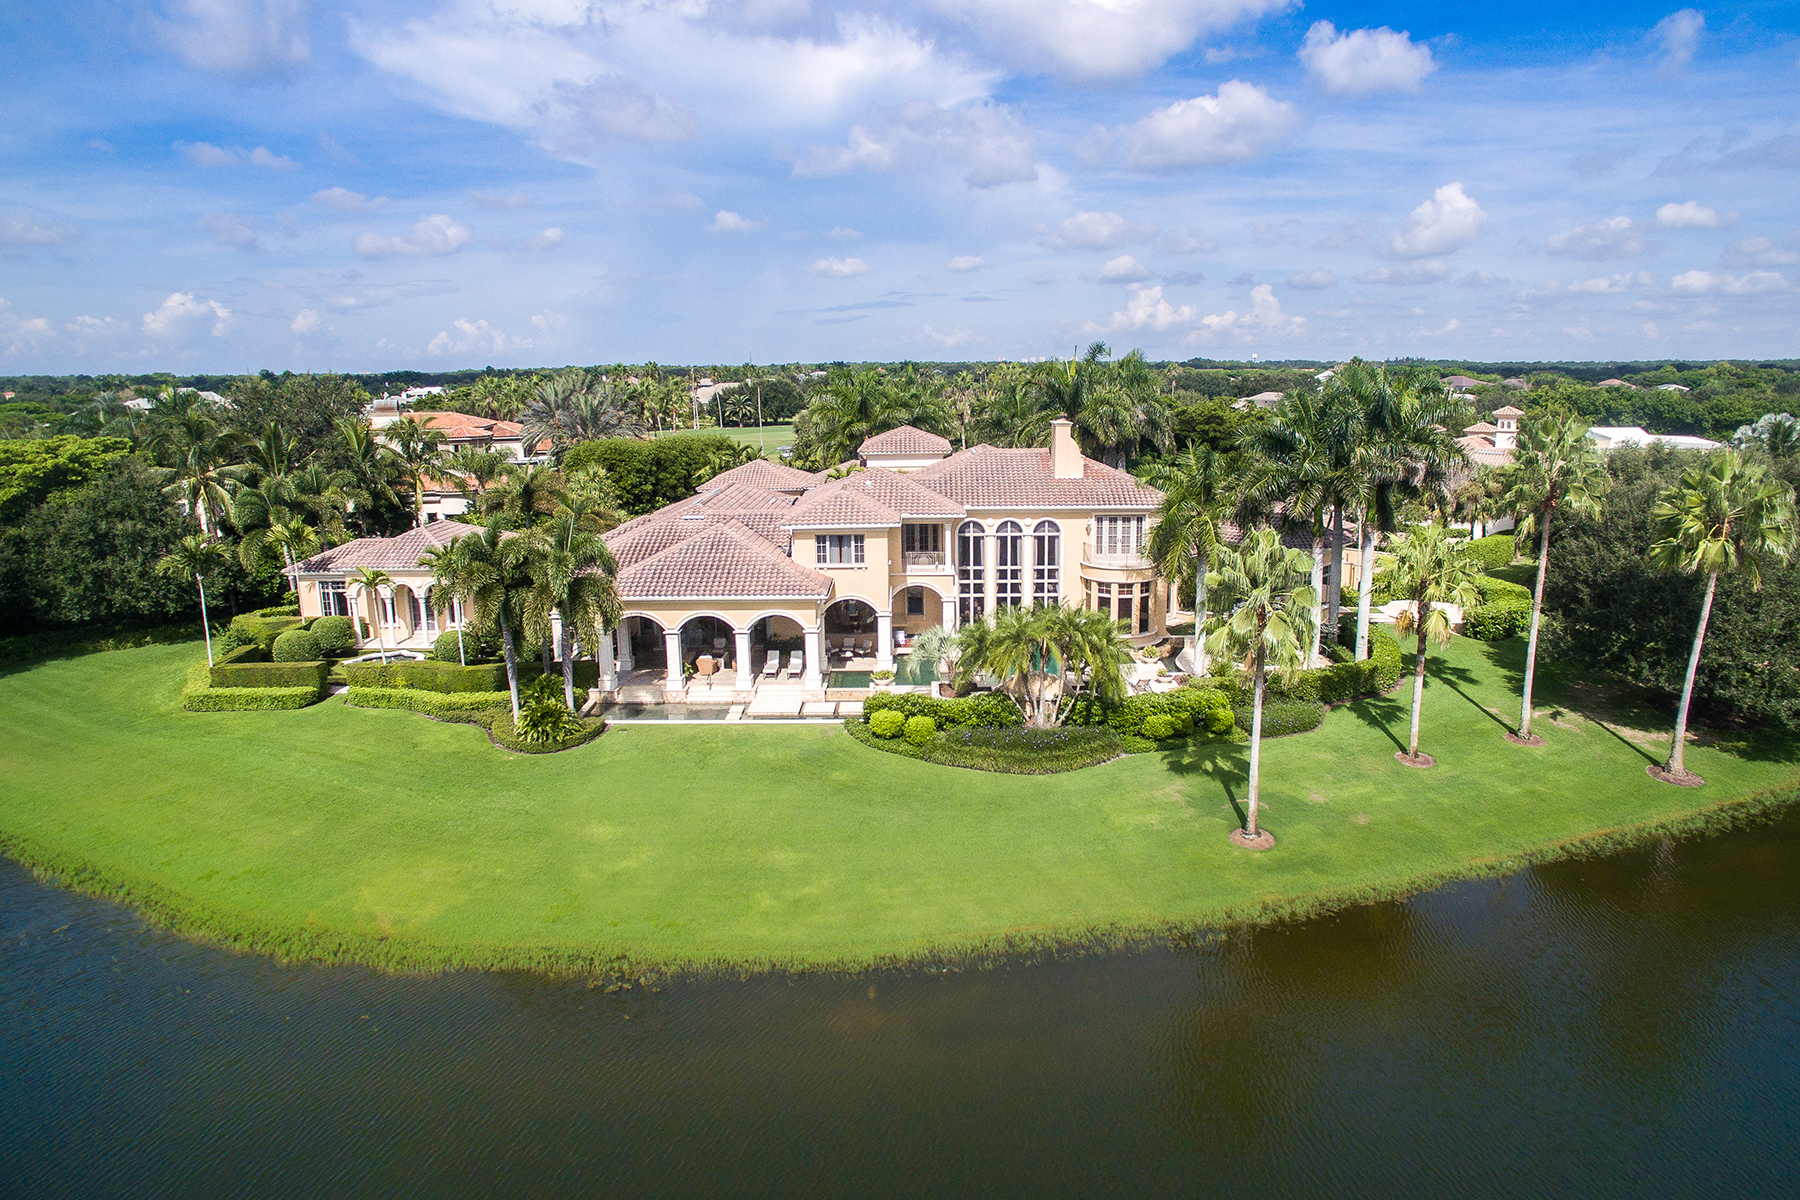 Single Family Home for Sale at QUAIL WEST 28921 Cavell Naples, Florida, 34119 United States